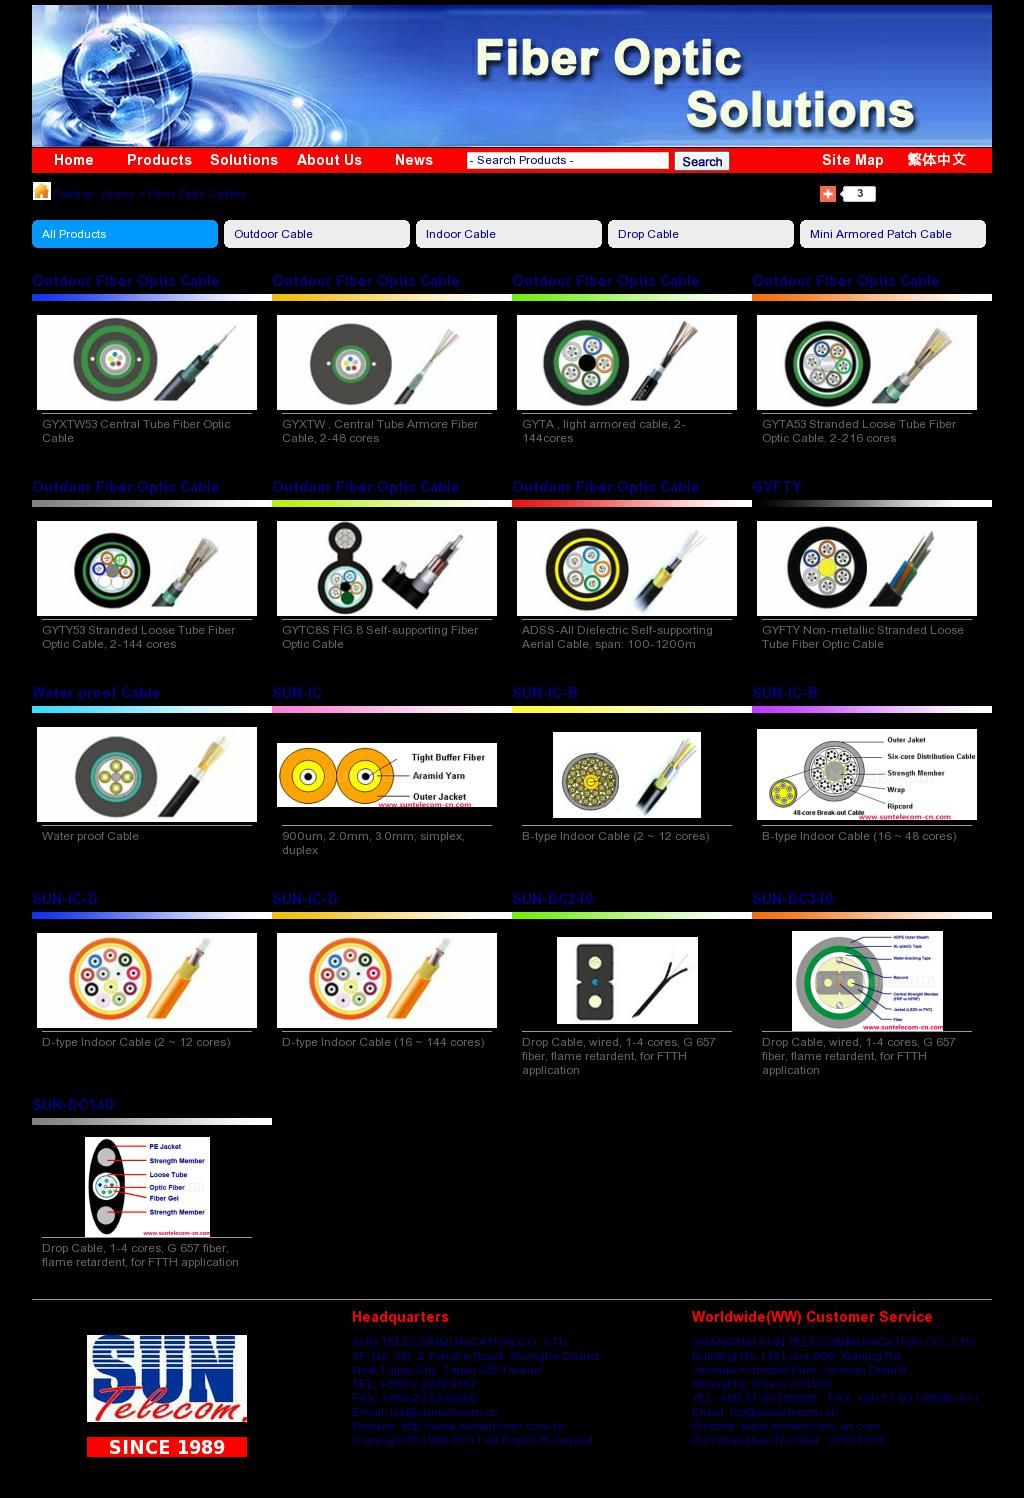 Fiber Optic Solutions All Kinds Of Fiber Optics Cables Available Fiber Optic Fibre Optics Fiber Optic Cable